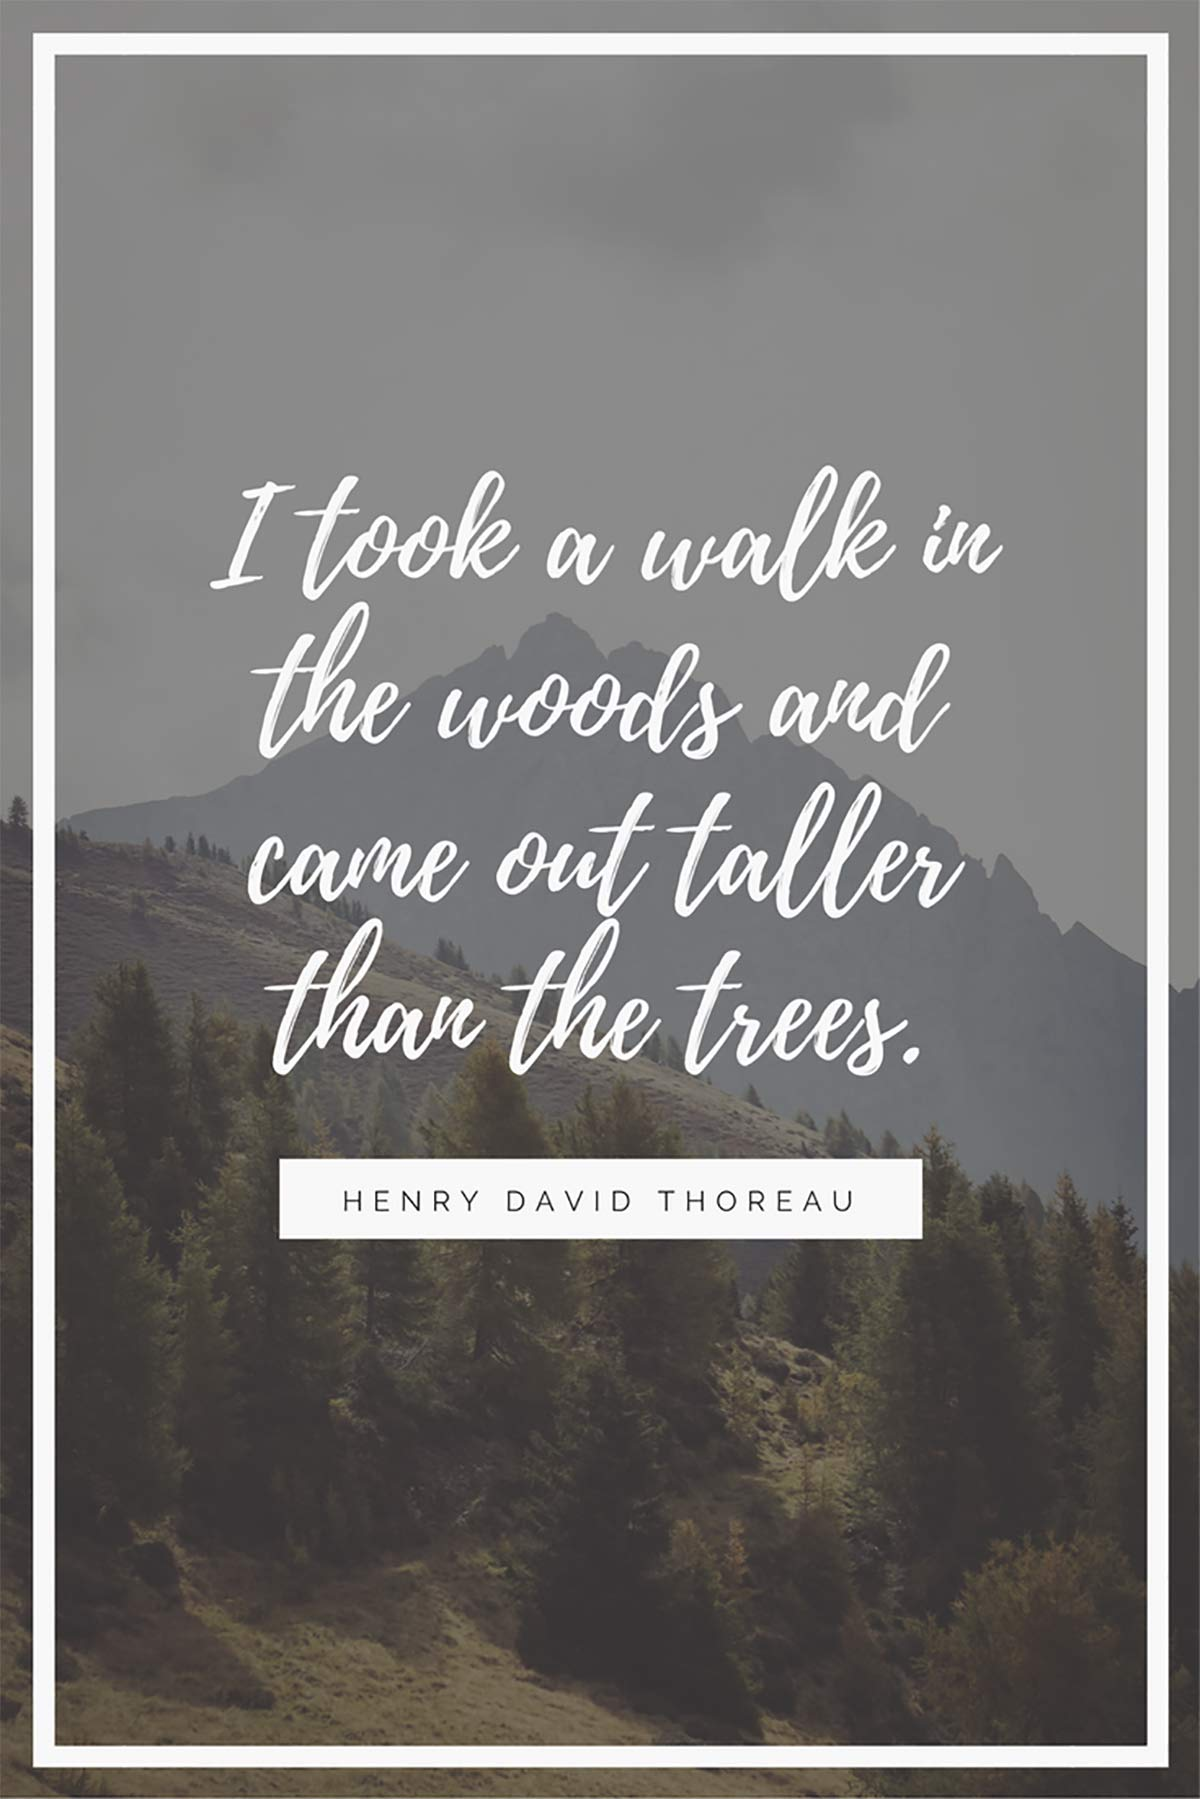 I took a walk in the woods and came out taller than the trees. – Henry David Thoreau